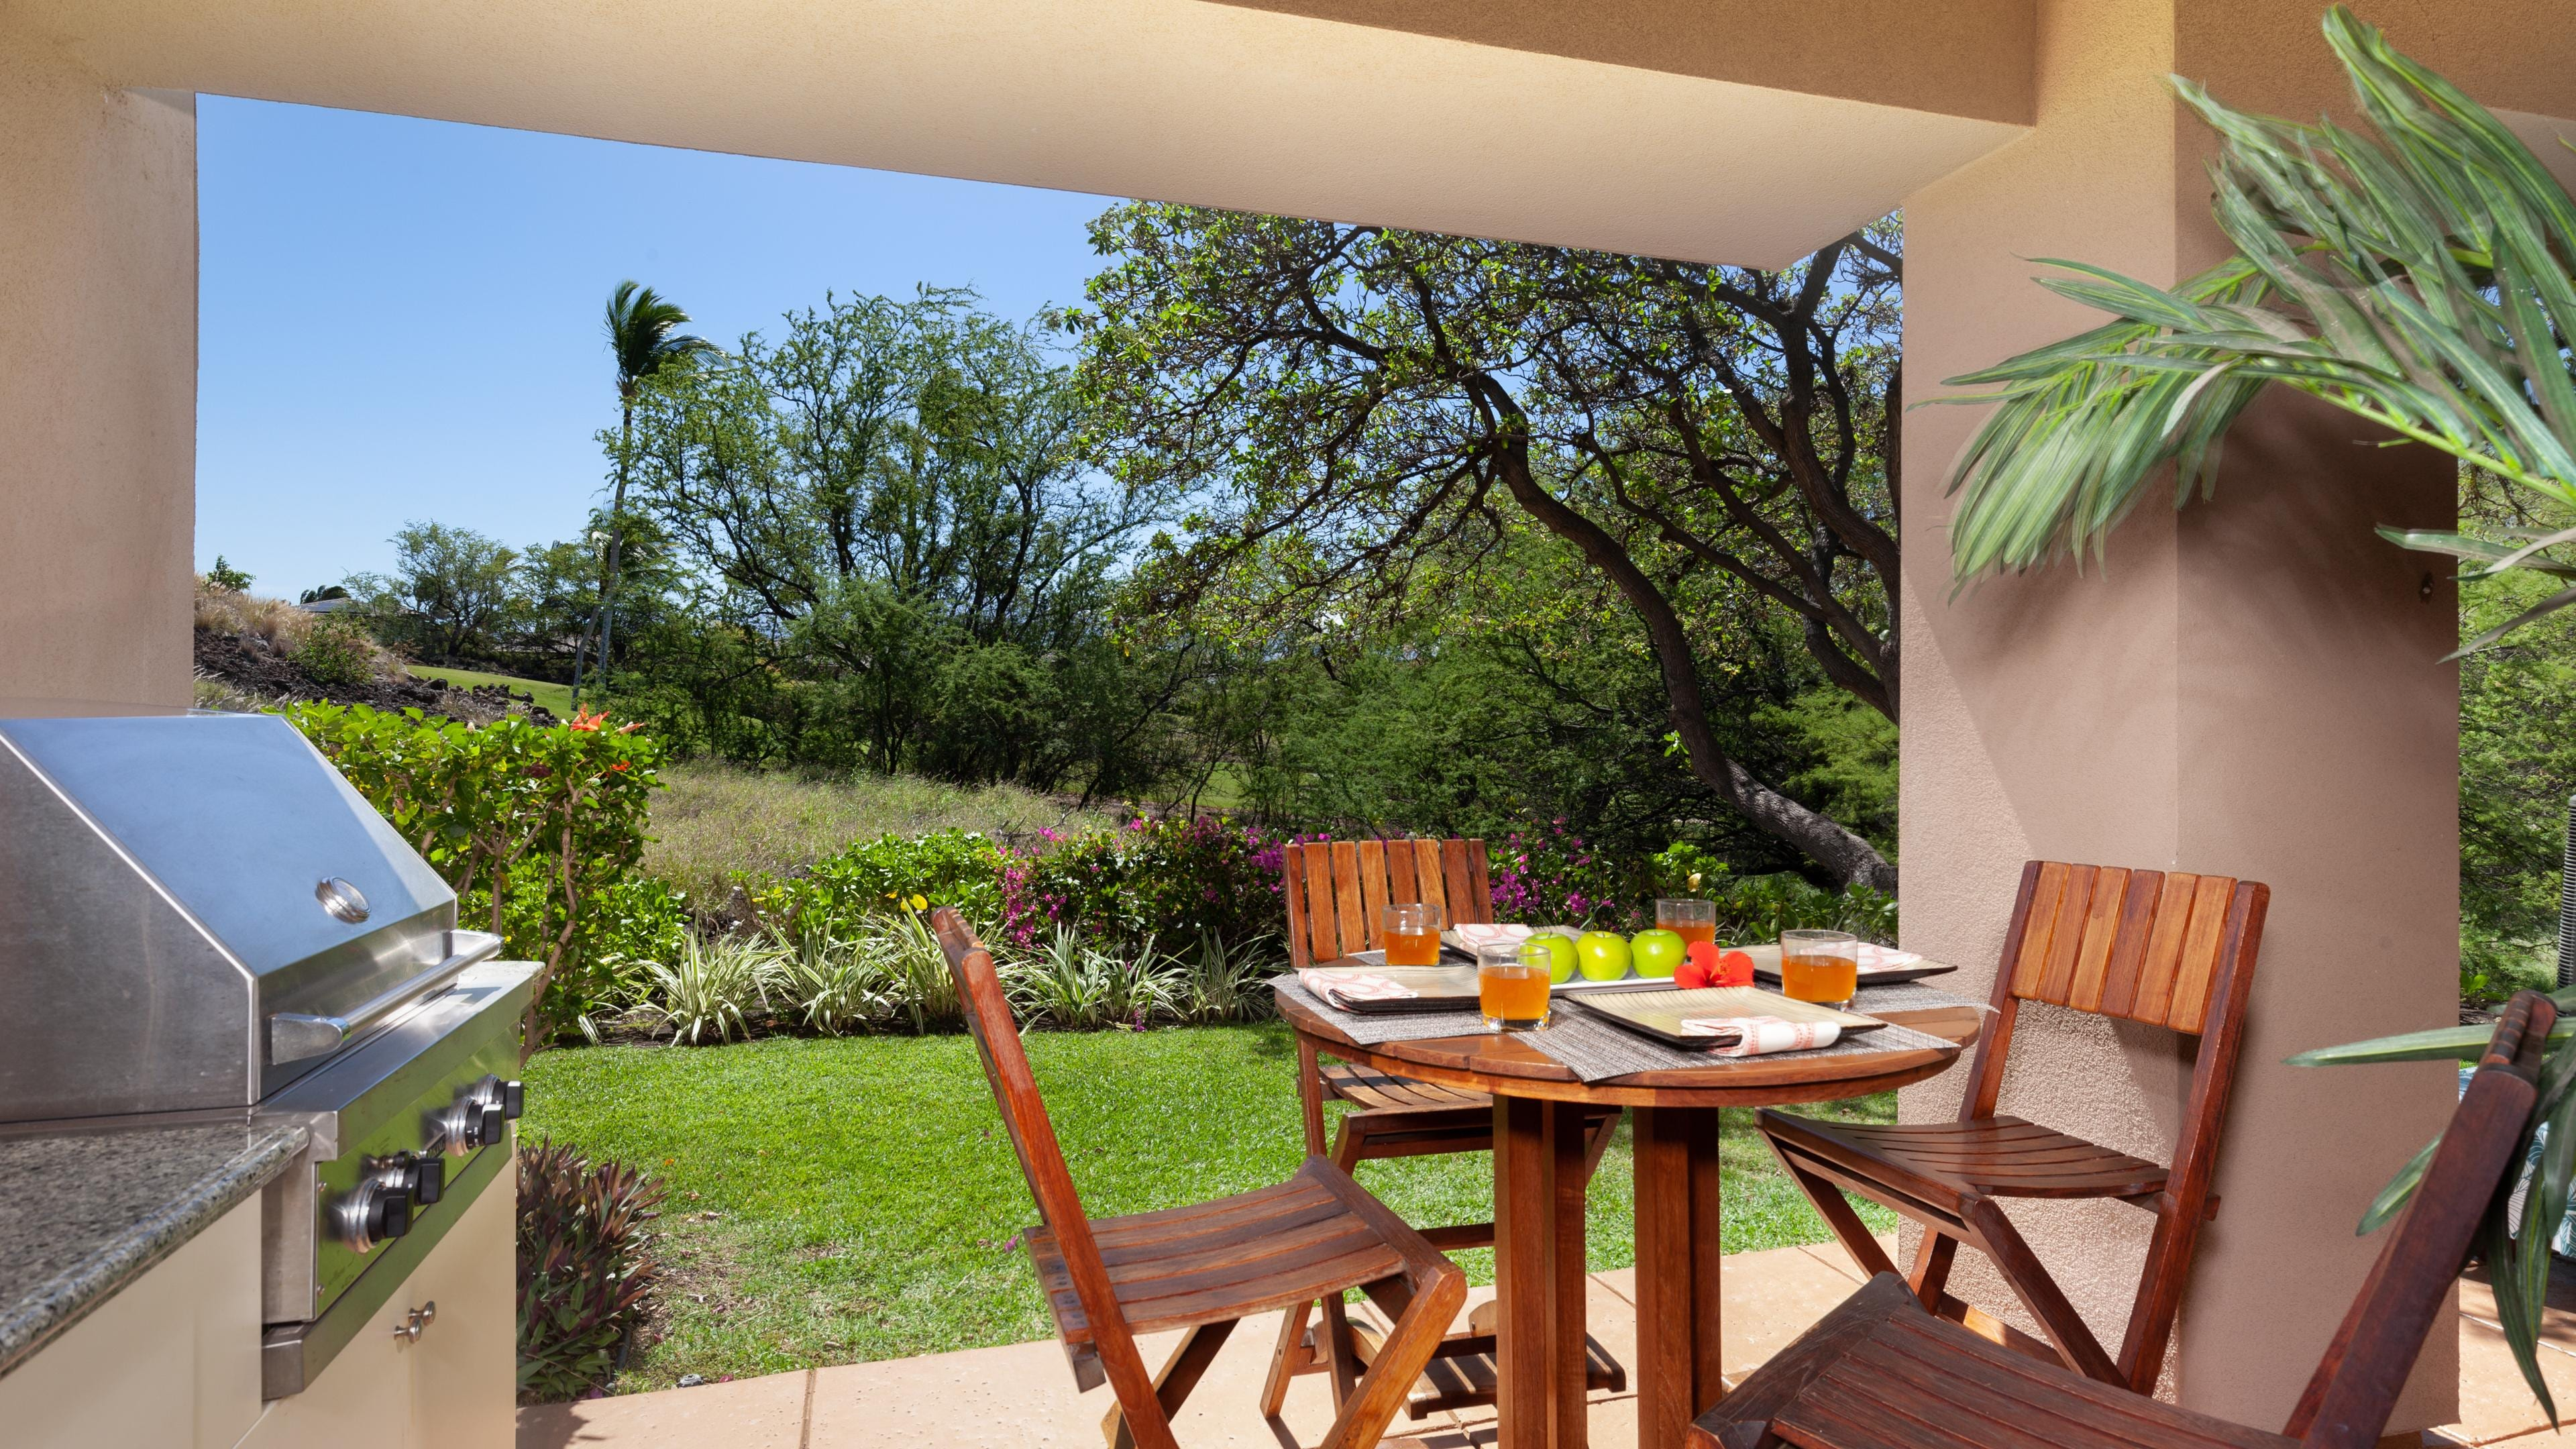 Covered lanai with private grill